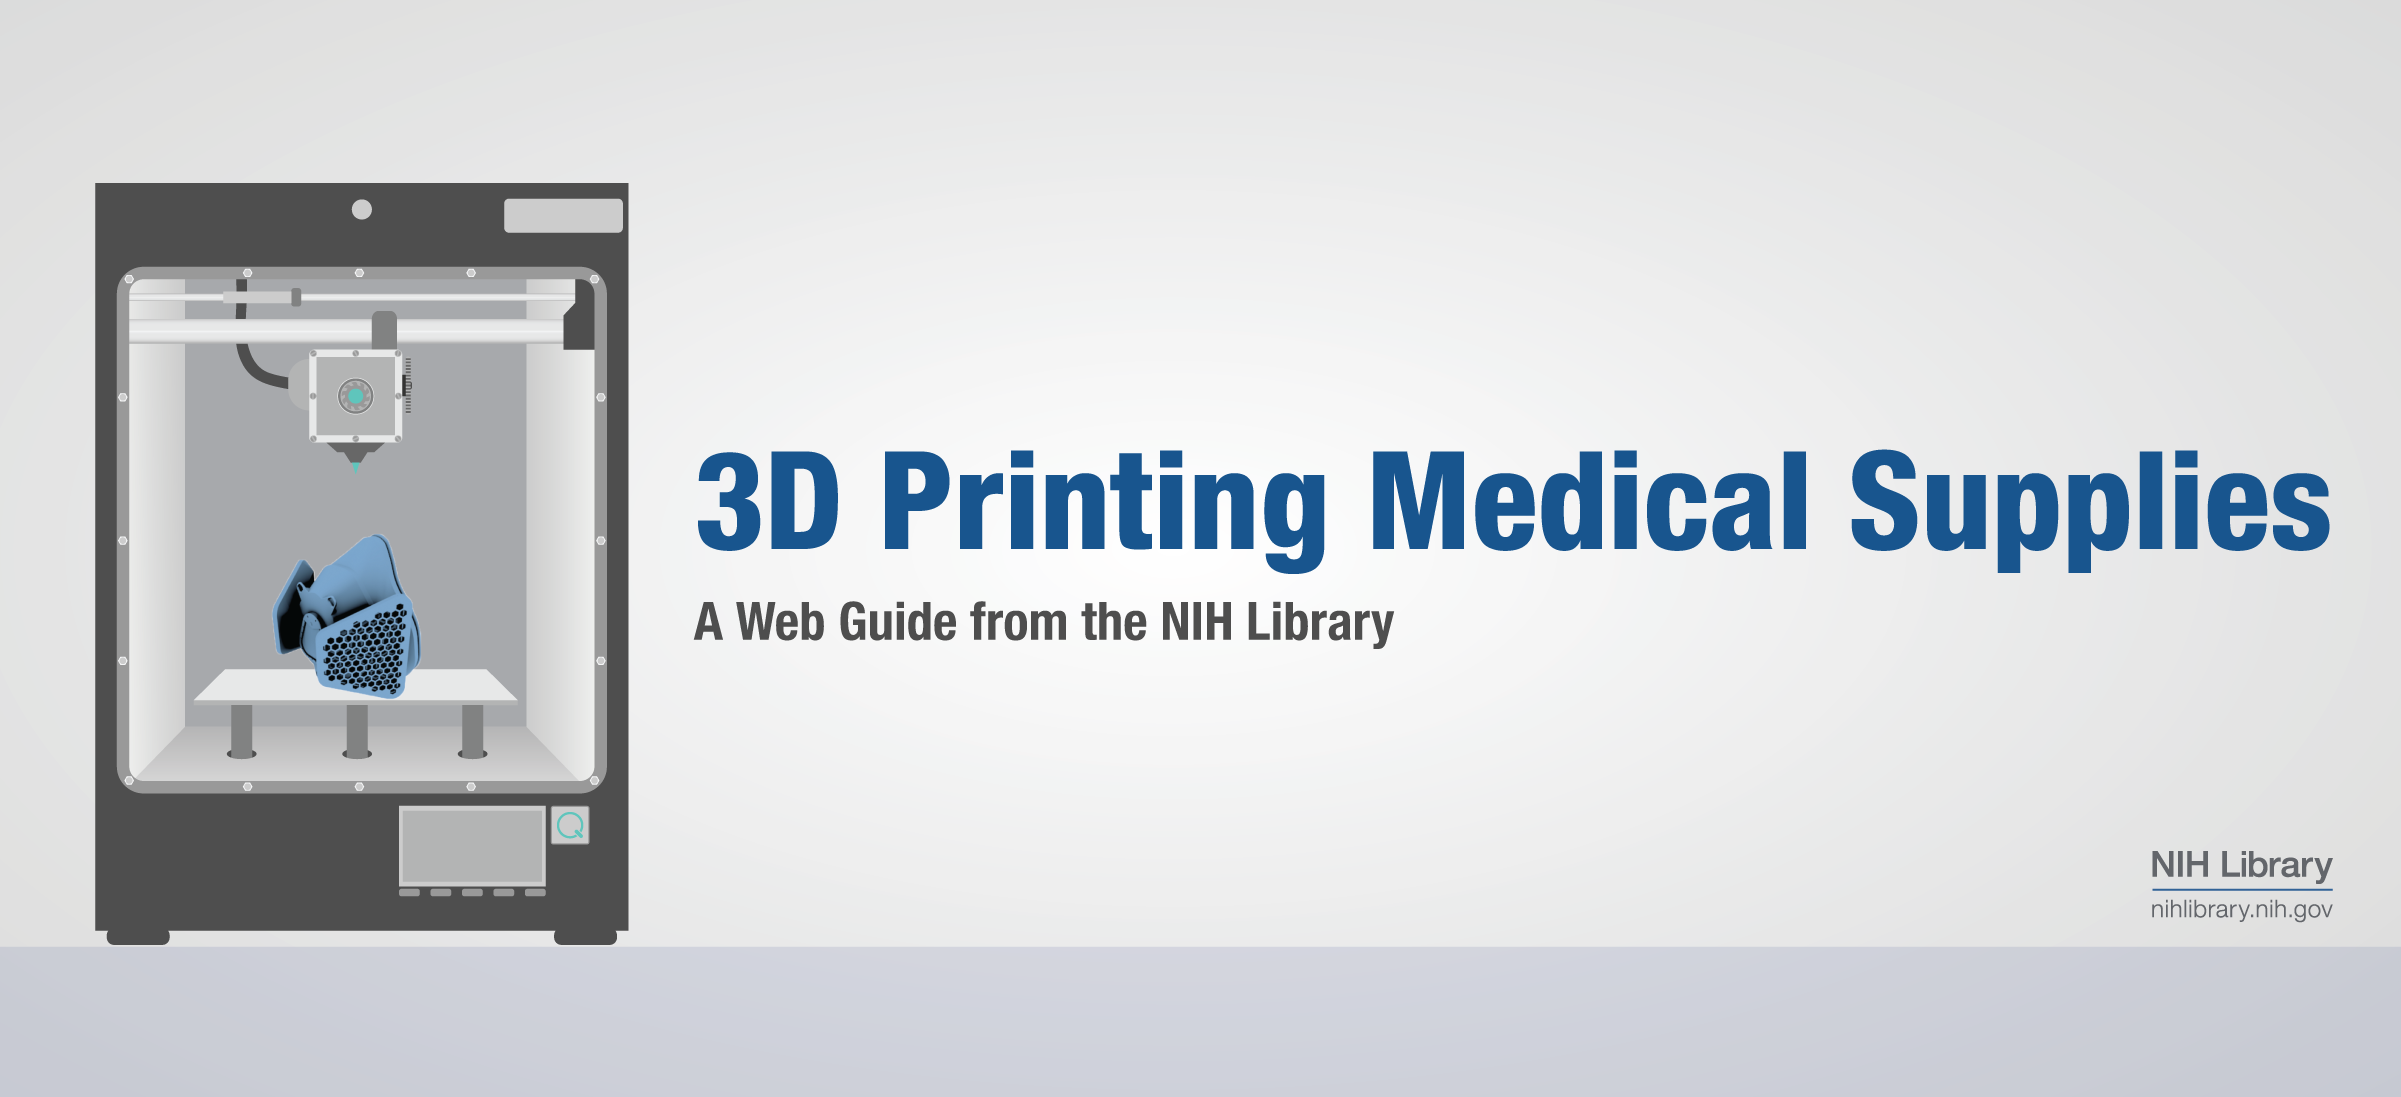 A Web Guide from the NIH Library